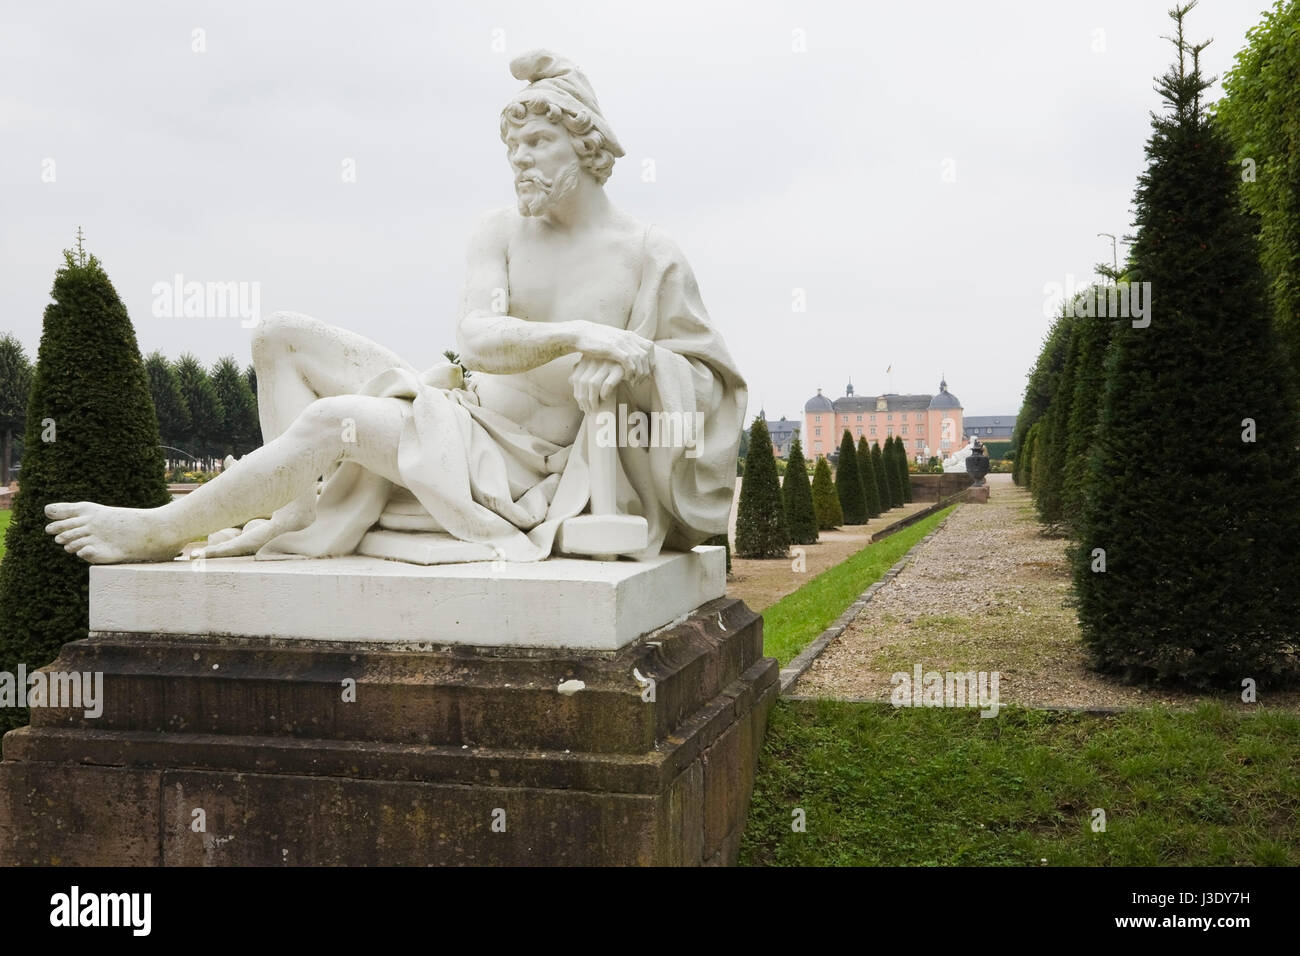 Older man sculpture and topiary in the Schwetzingen palace garden in late summer, Schwetzingen, Germany, Europe. - Stock Image